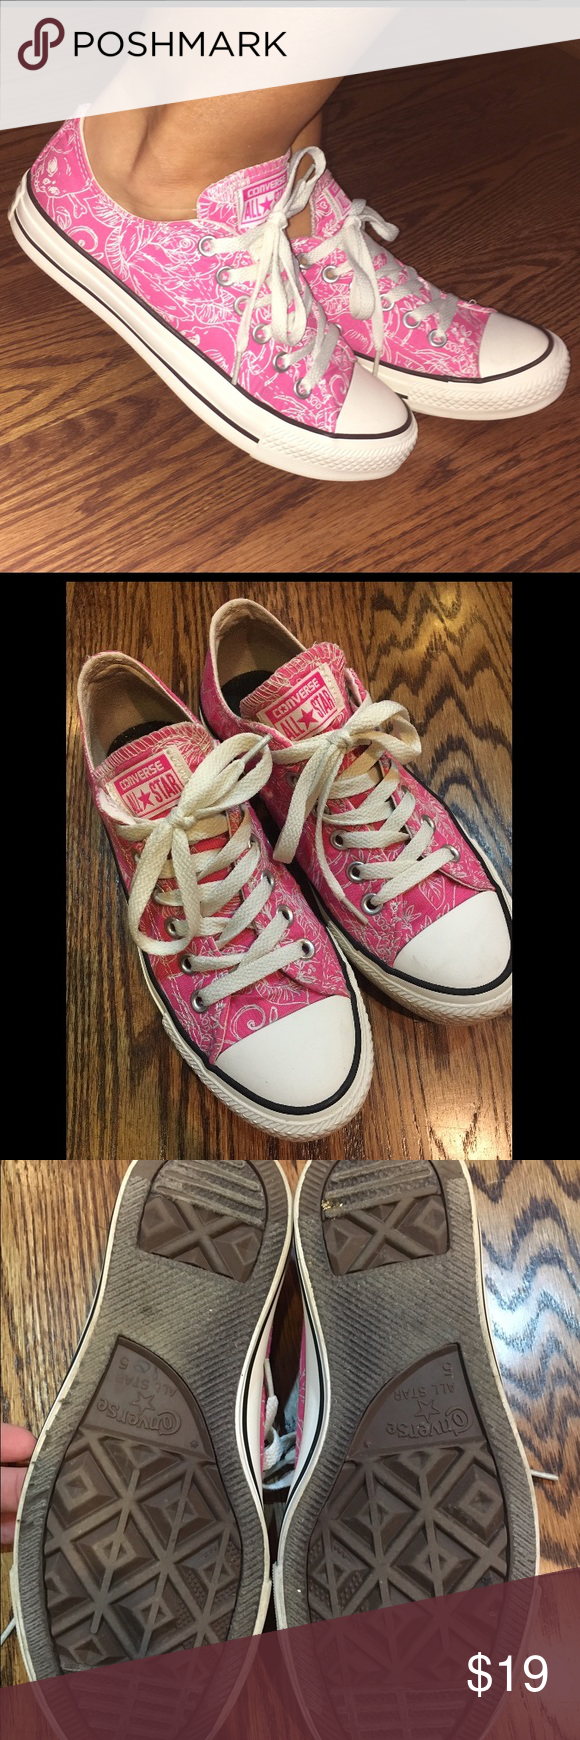 Jazzy Hot Pink Converse Women's 7 7.5 🎀 These are in great condition, I wore them a few times. What a fun color!! They run a little big...more like a 7.5. Priced to sell. I ship almost daily. 🎀📦📪 Converse Shoes Sneakers